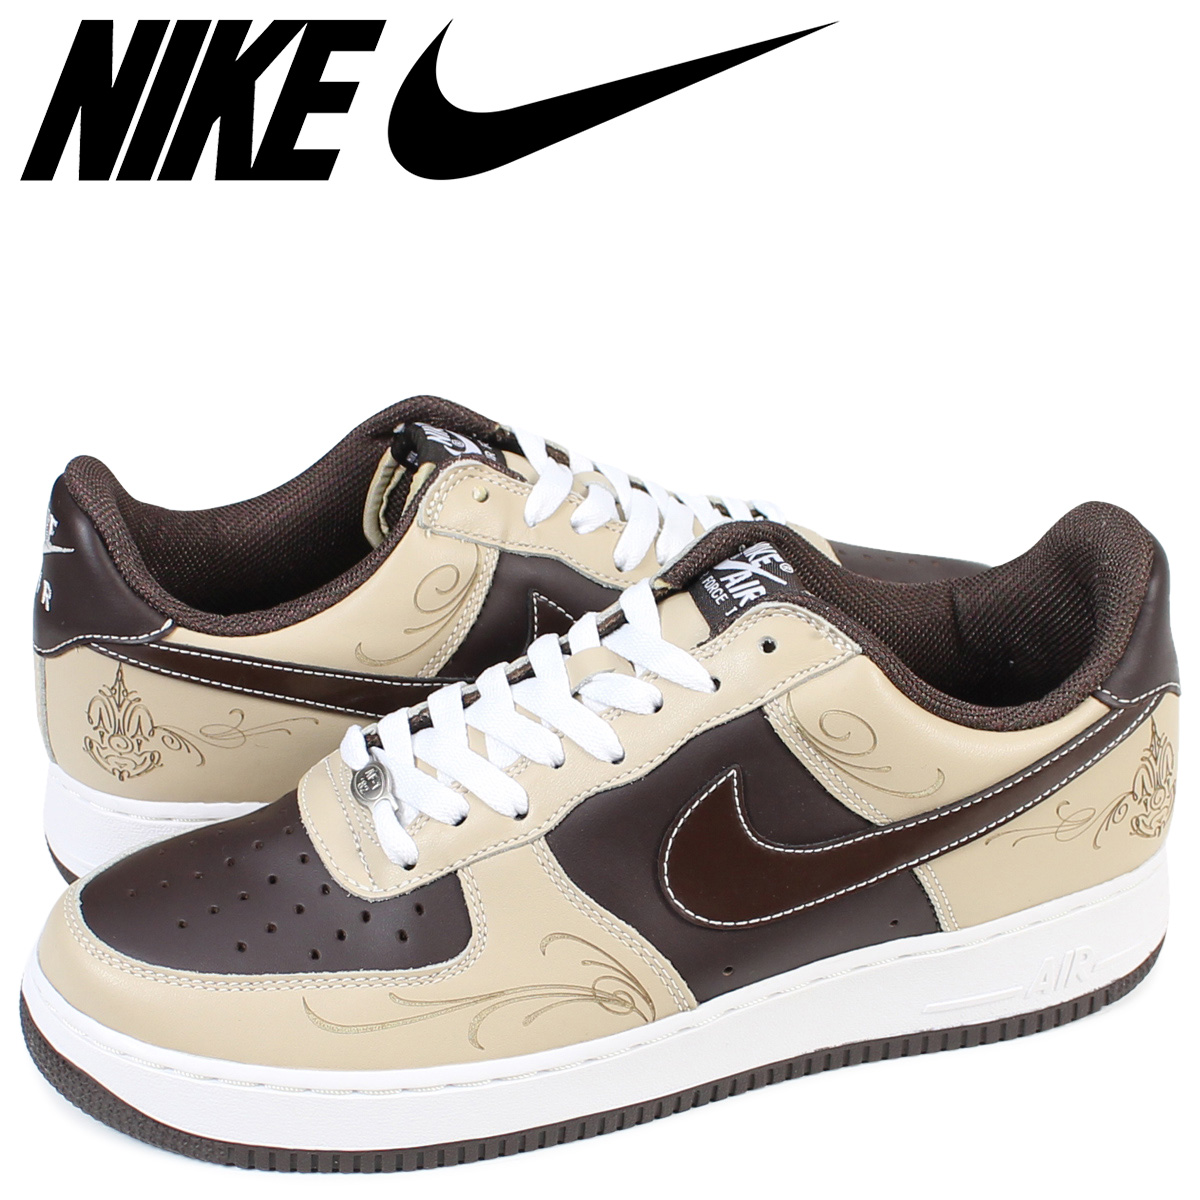 new styles c99a7 e8d32 NIKE AIR FORCE 1 MR CARTOON Nike air force 1 sneakers 307,334-221 men s  shoes ...